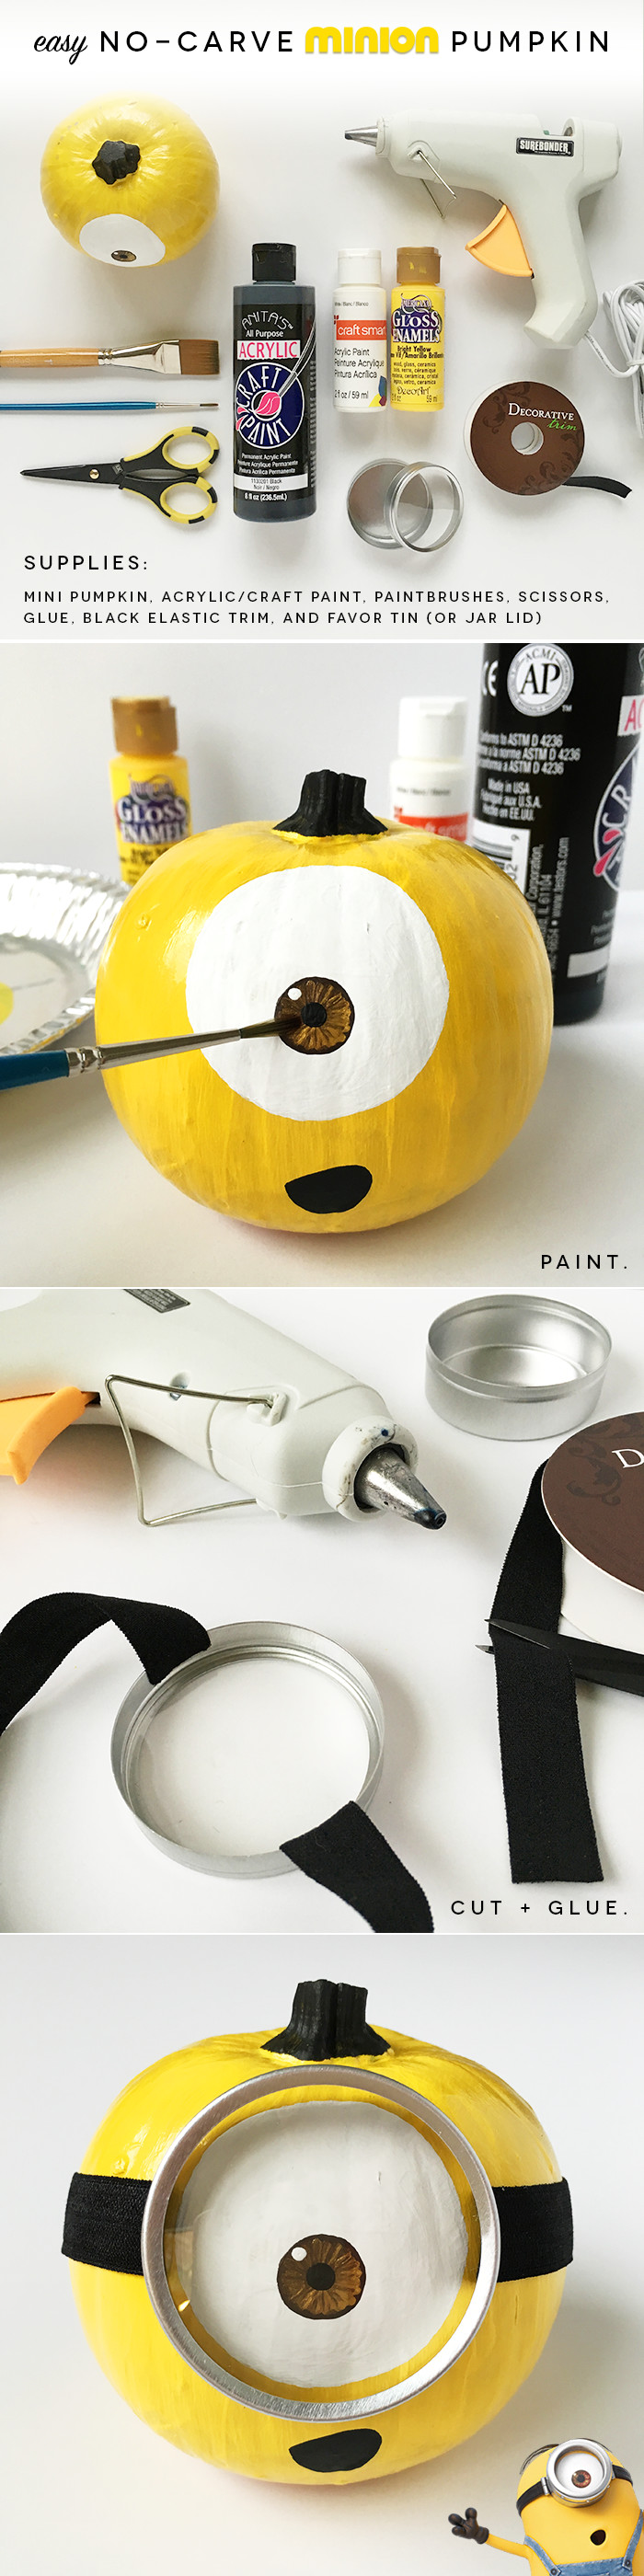 Make an EASY, no-carve Minion pumpkin in just a few steps: paint the head (whole pumpkin), hair (stem), eye, and mouth, then glue elastic trim to the lid of a favor tin or jar. You'll save tons of time by choosing a small pumpkin and only decorating the head. :)